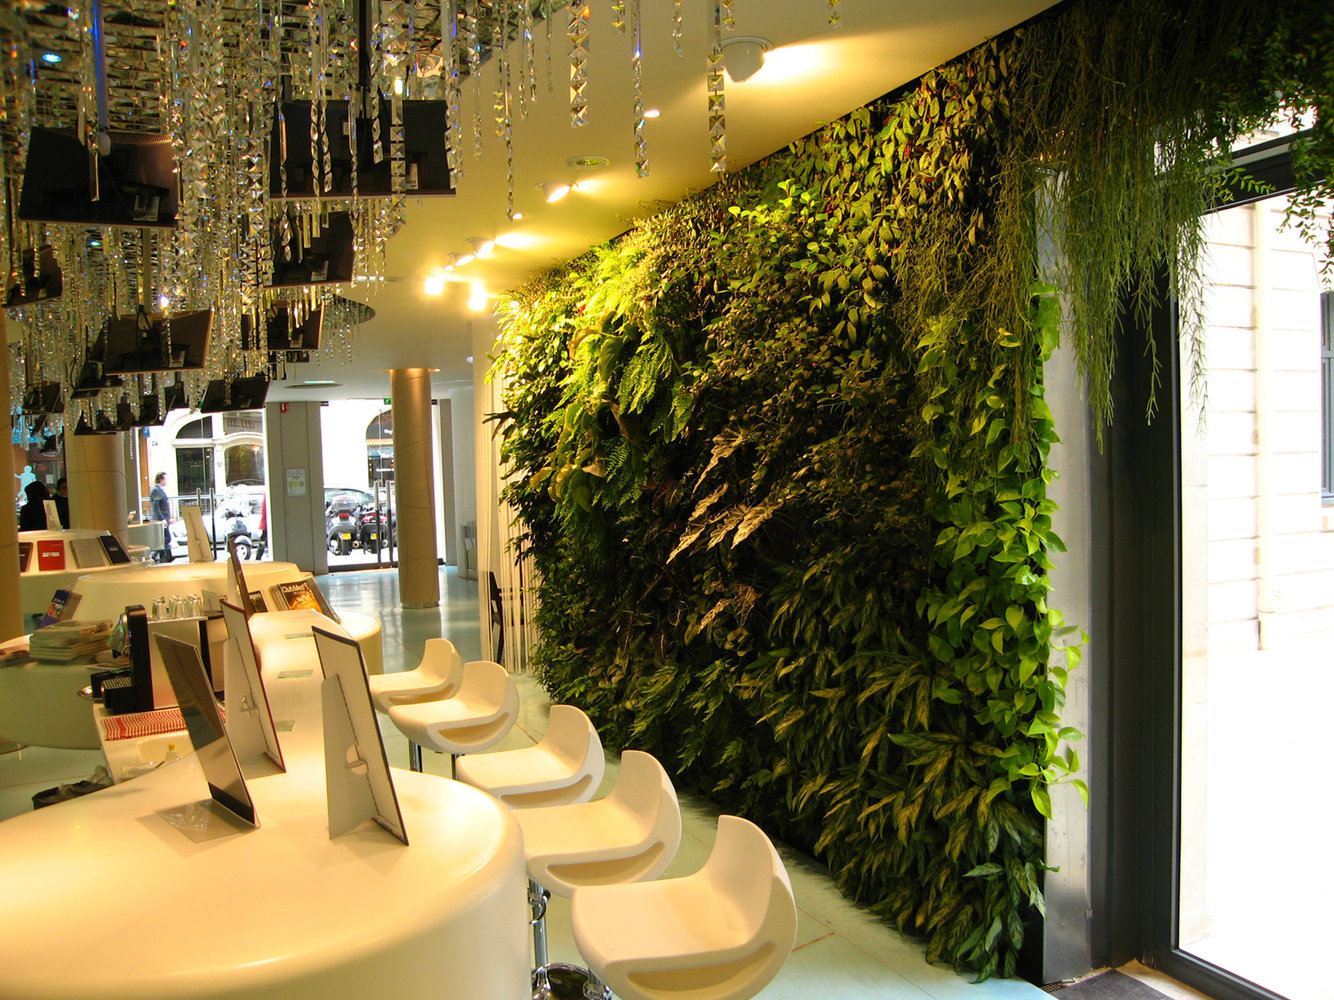 Club med paris vertical garden patrick blanc for Interiores de restaurantes